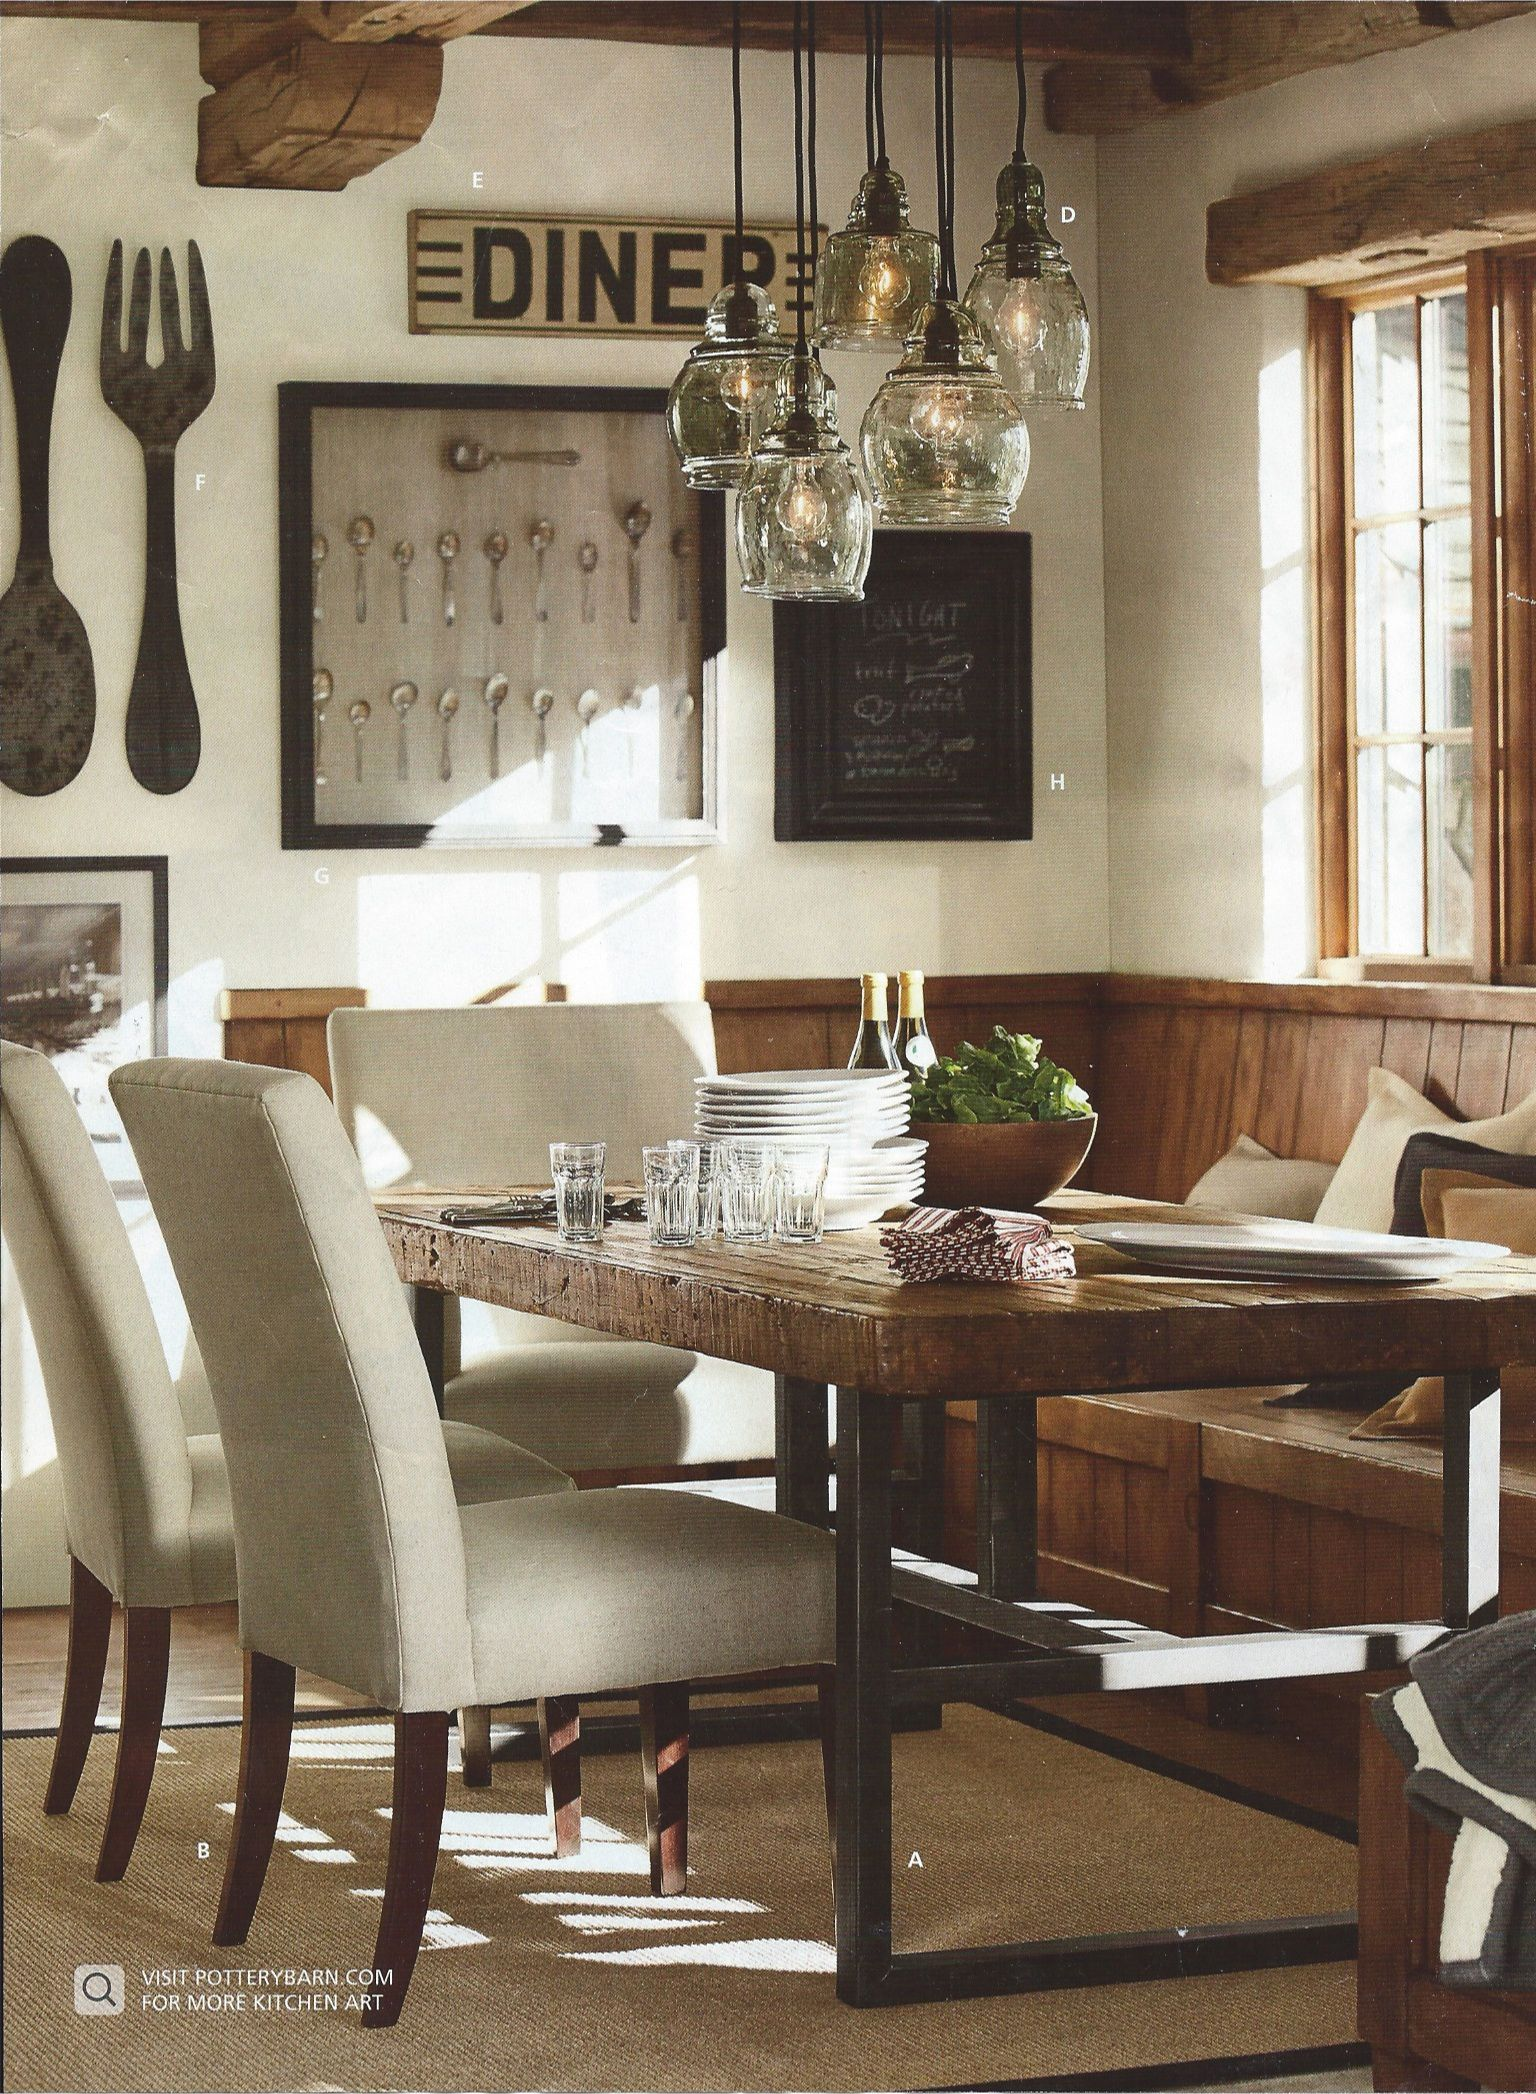 Pin by Scarlet Piper on Kitchens   Farmhouse dining, Dining room ...